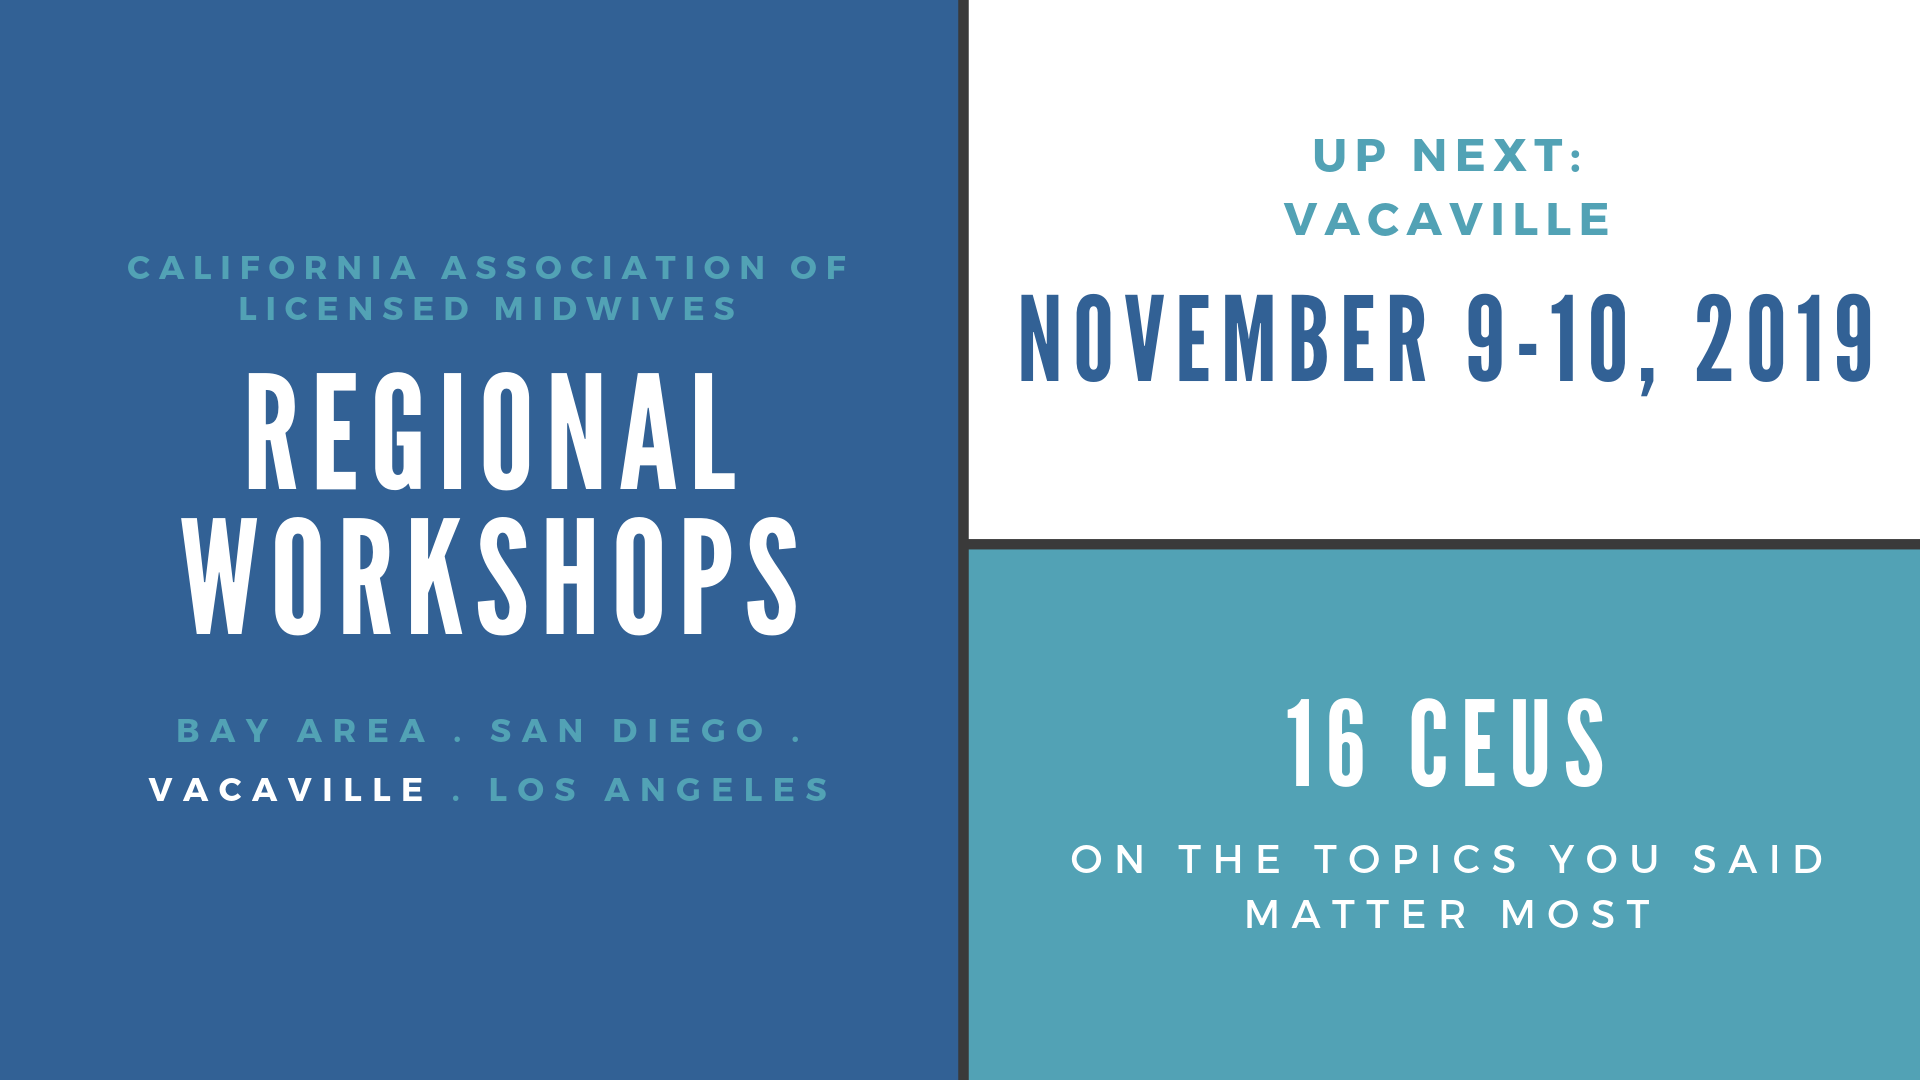 California Association of Licensed Midwives - Events